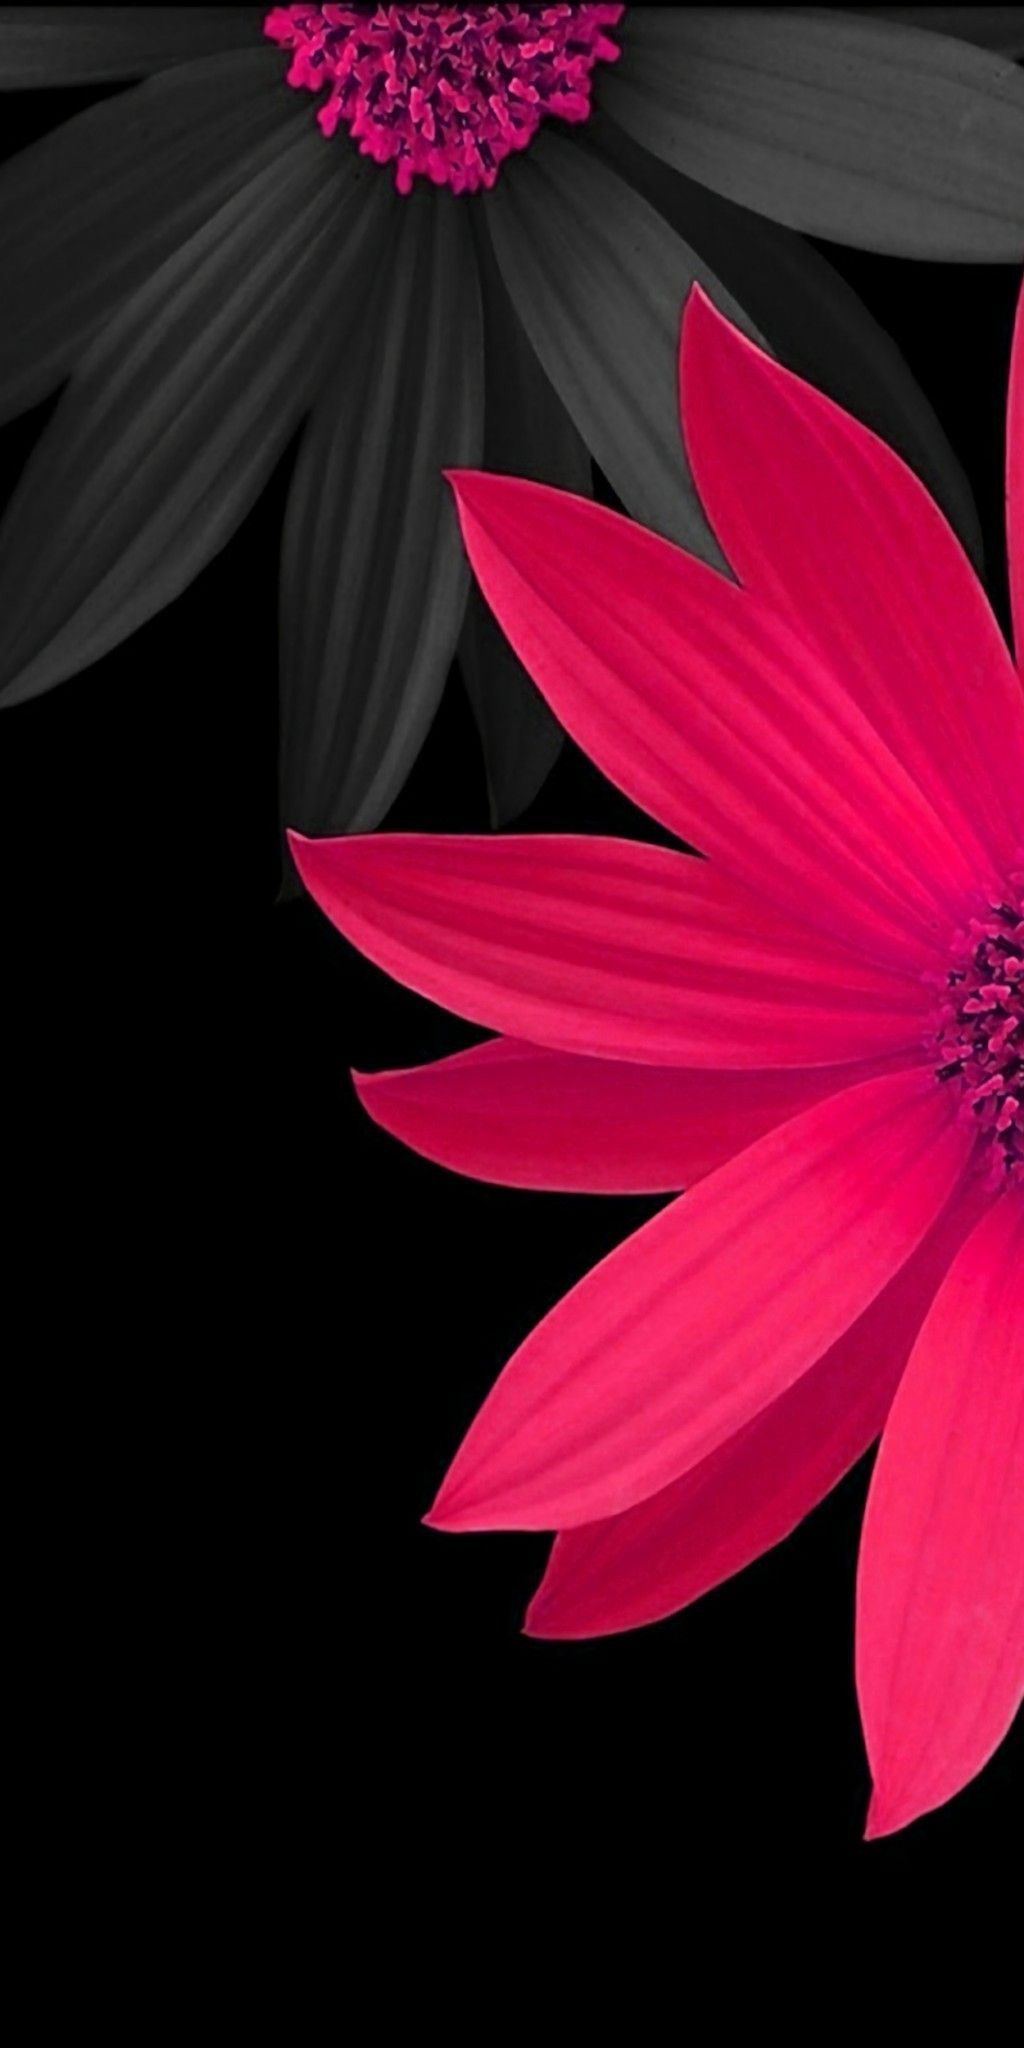 Pink and Black 3D Flowers Wallpaper Pink and Flowers Wallpaper 1024x2048